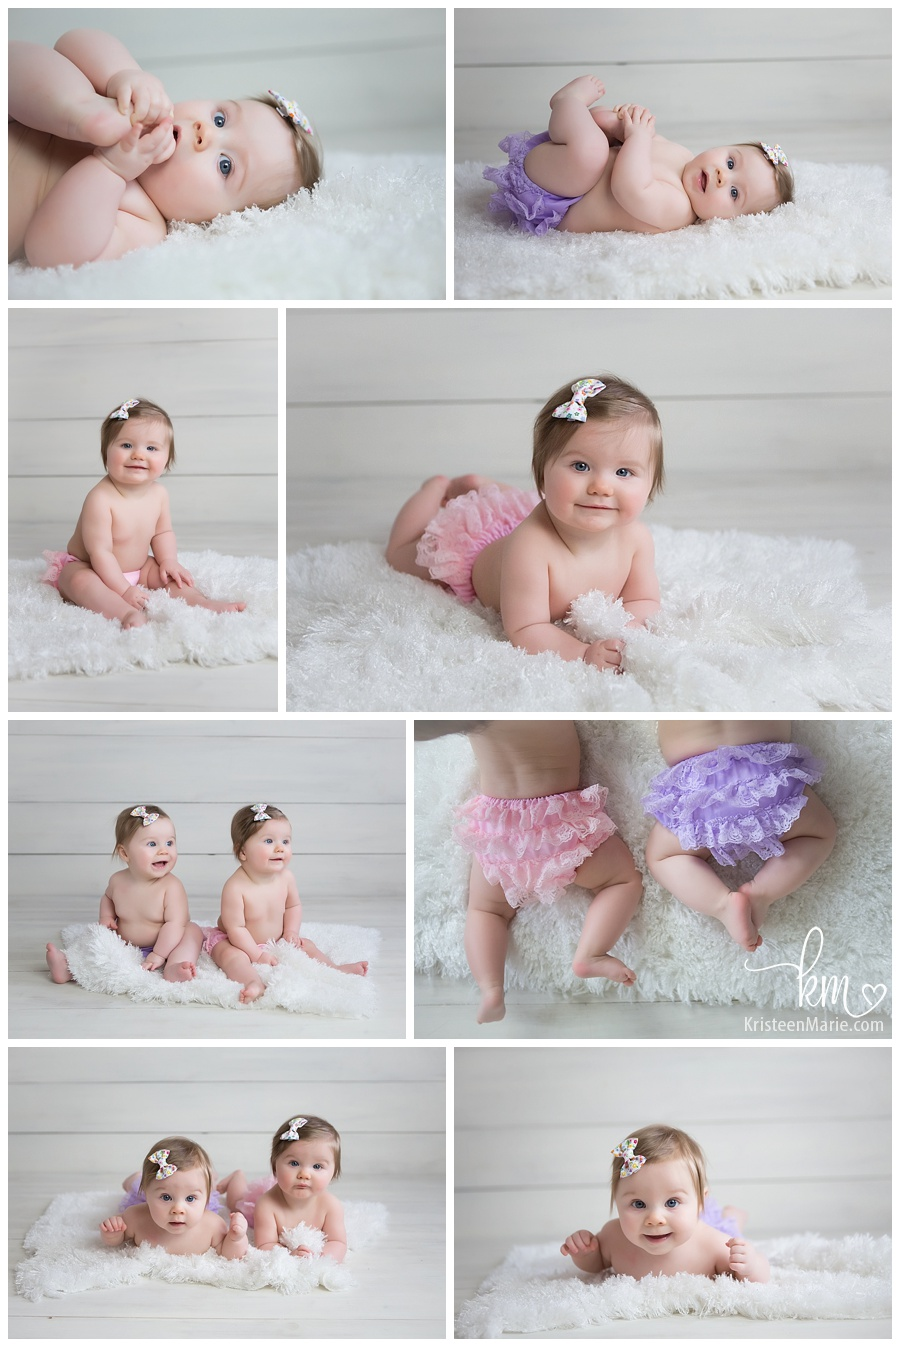 Indianapolis Twin Newborn Photographer | KristeenMarie Photography